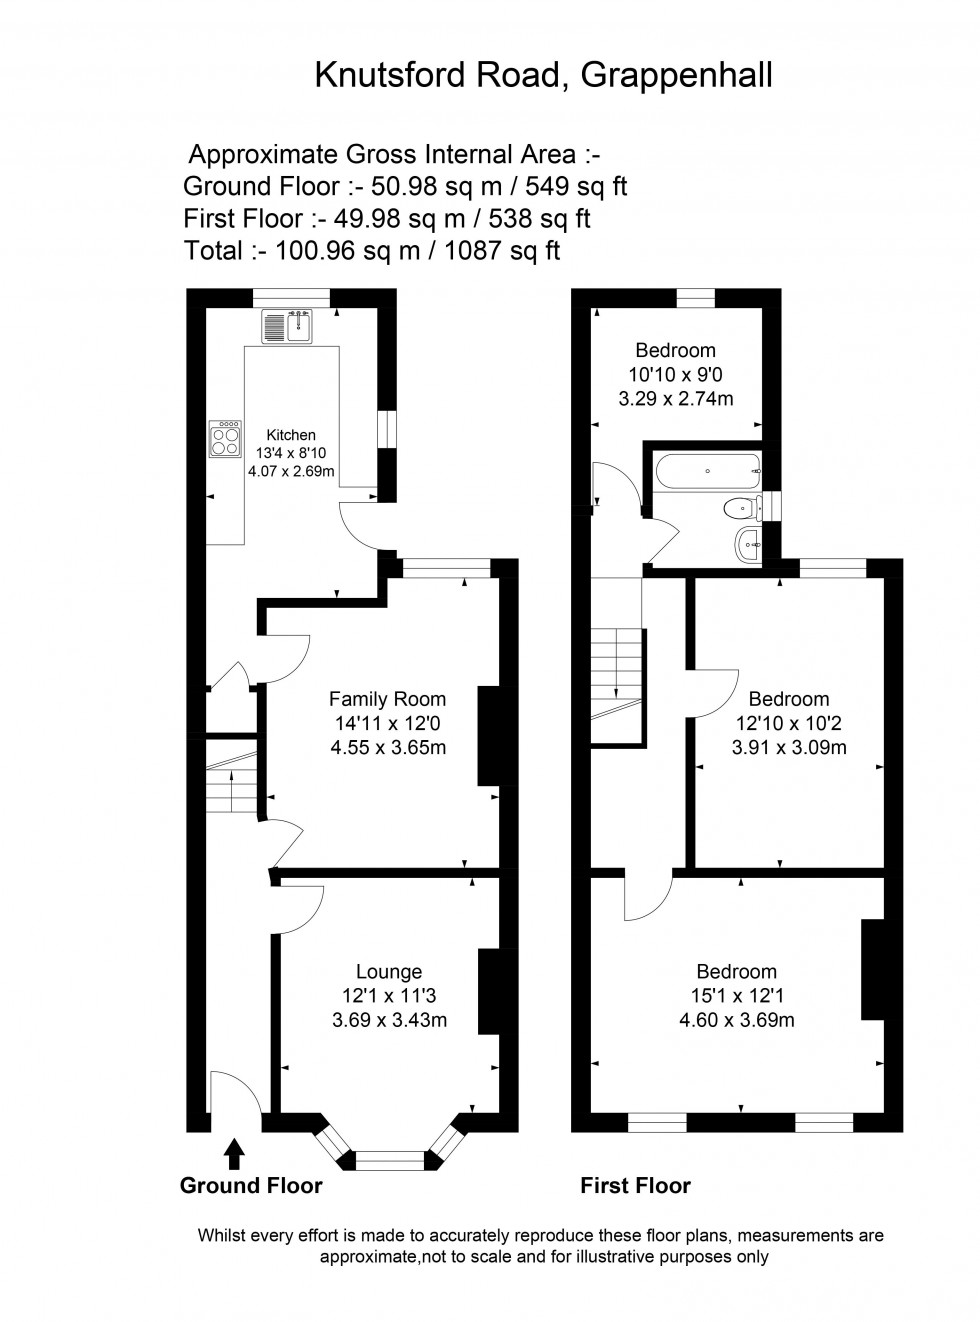 Floorplan for Knutsford Road, Grappenhall